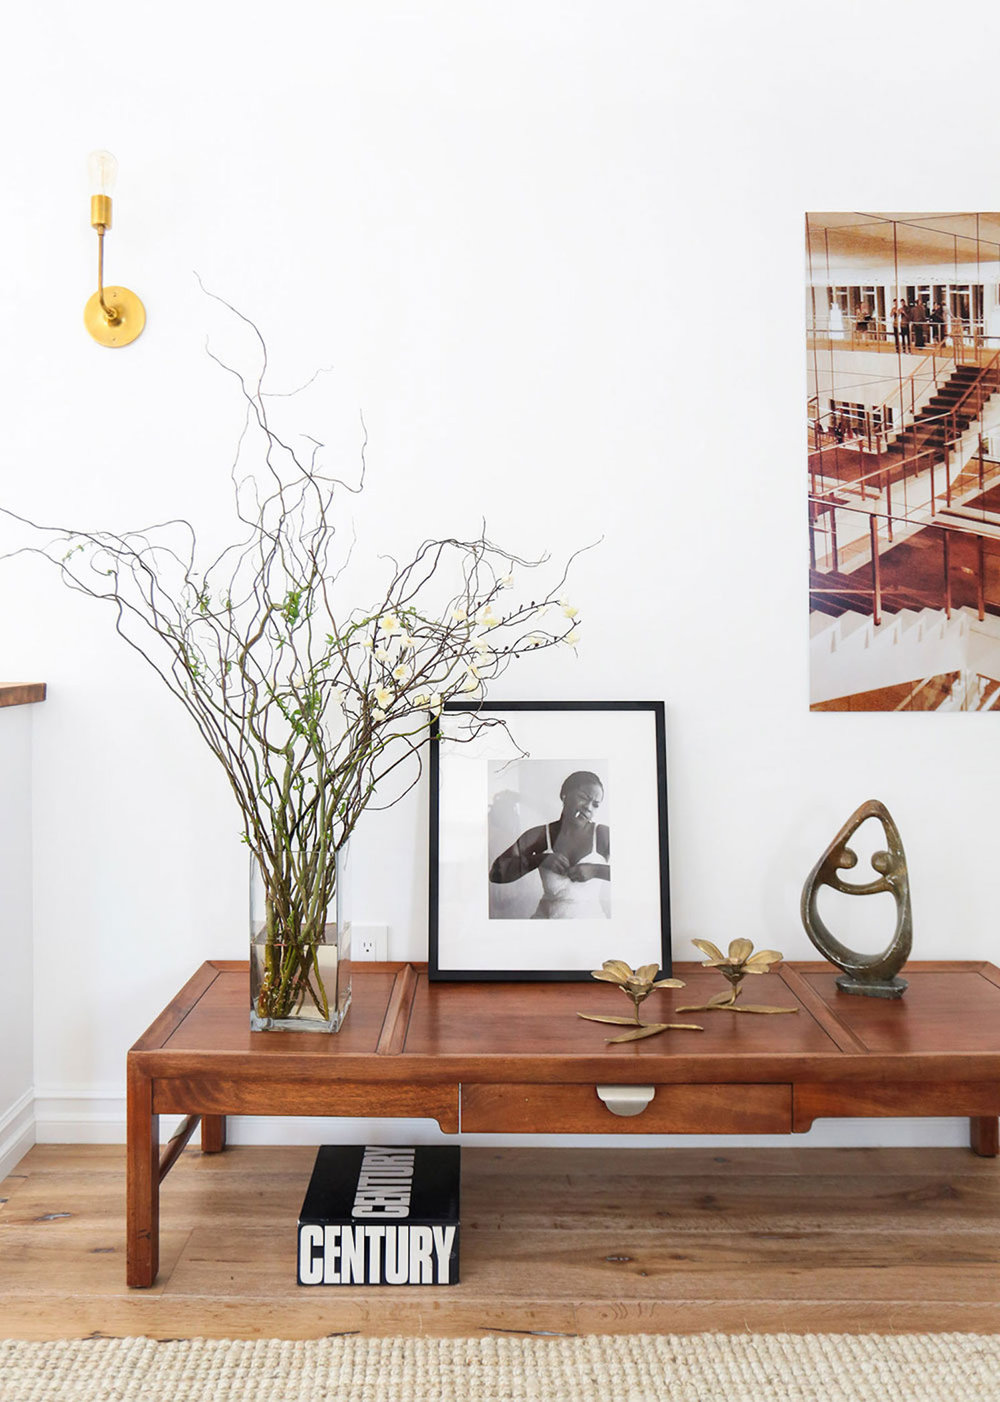 Back to Basics: The Design Ground Rules You Need to Know (Before Breaking Them) - by GABRIELLE SAVOIEMost of us have a firm sense of what we like and dislike when decorating a room—we've seen enough magazines, TV shows,Pinterest boards, and furniture stores to know our style (or at least what we definitely don't want in our room). But decorating takes more than just a sense of style to look right—proportions and design rules are equally important. We often hear interior designerstalk about scale when referring to good décor. You can buy the most beautiful chandelier in the world, but if the size is wrong for the space, it will look weird—guaranteedfull story